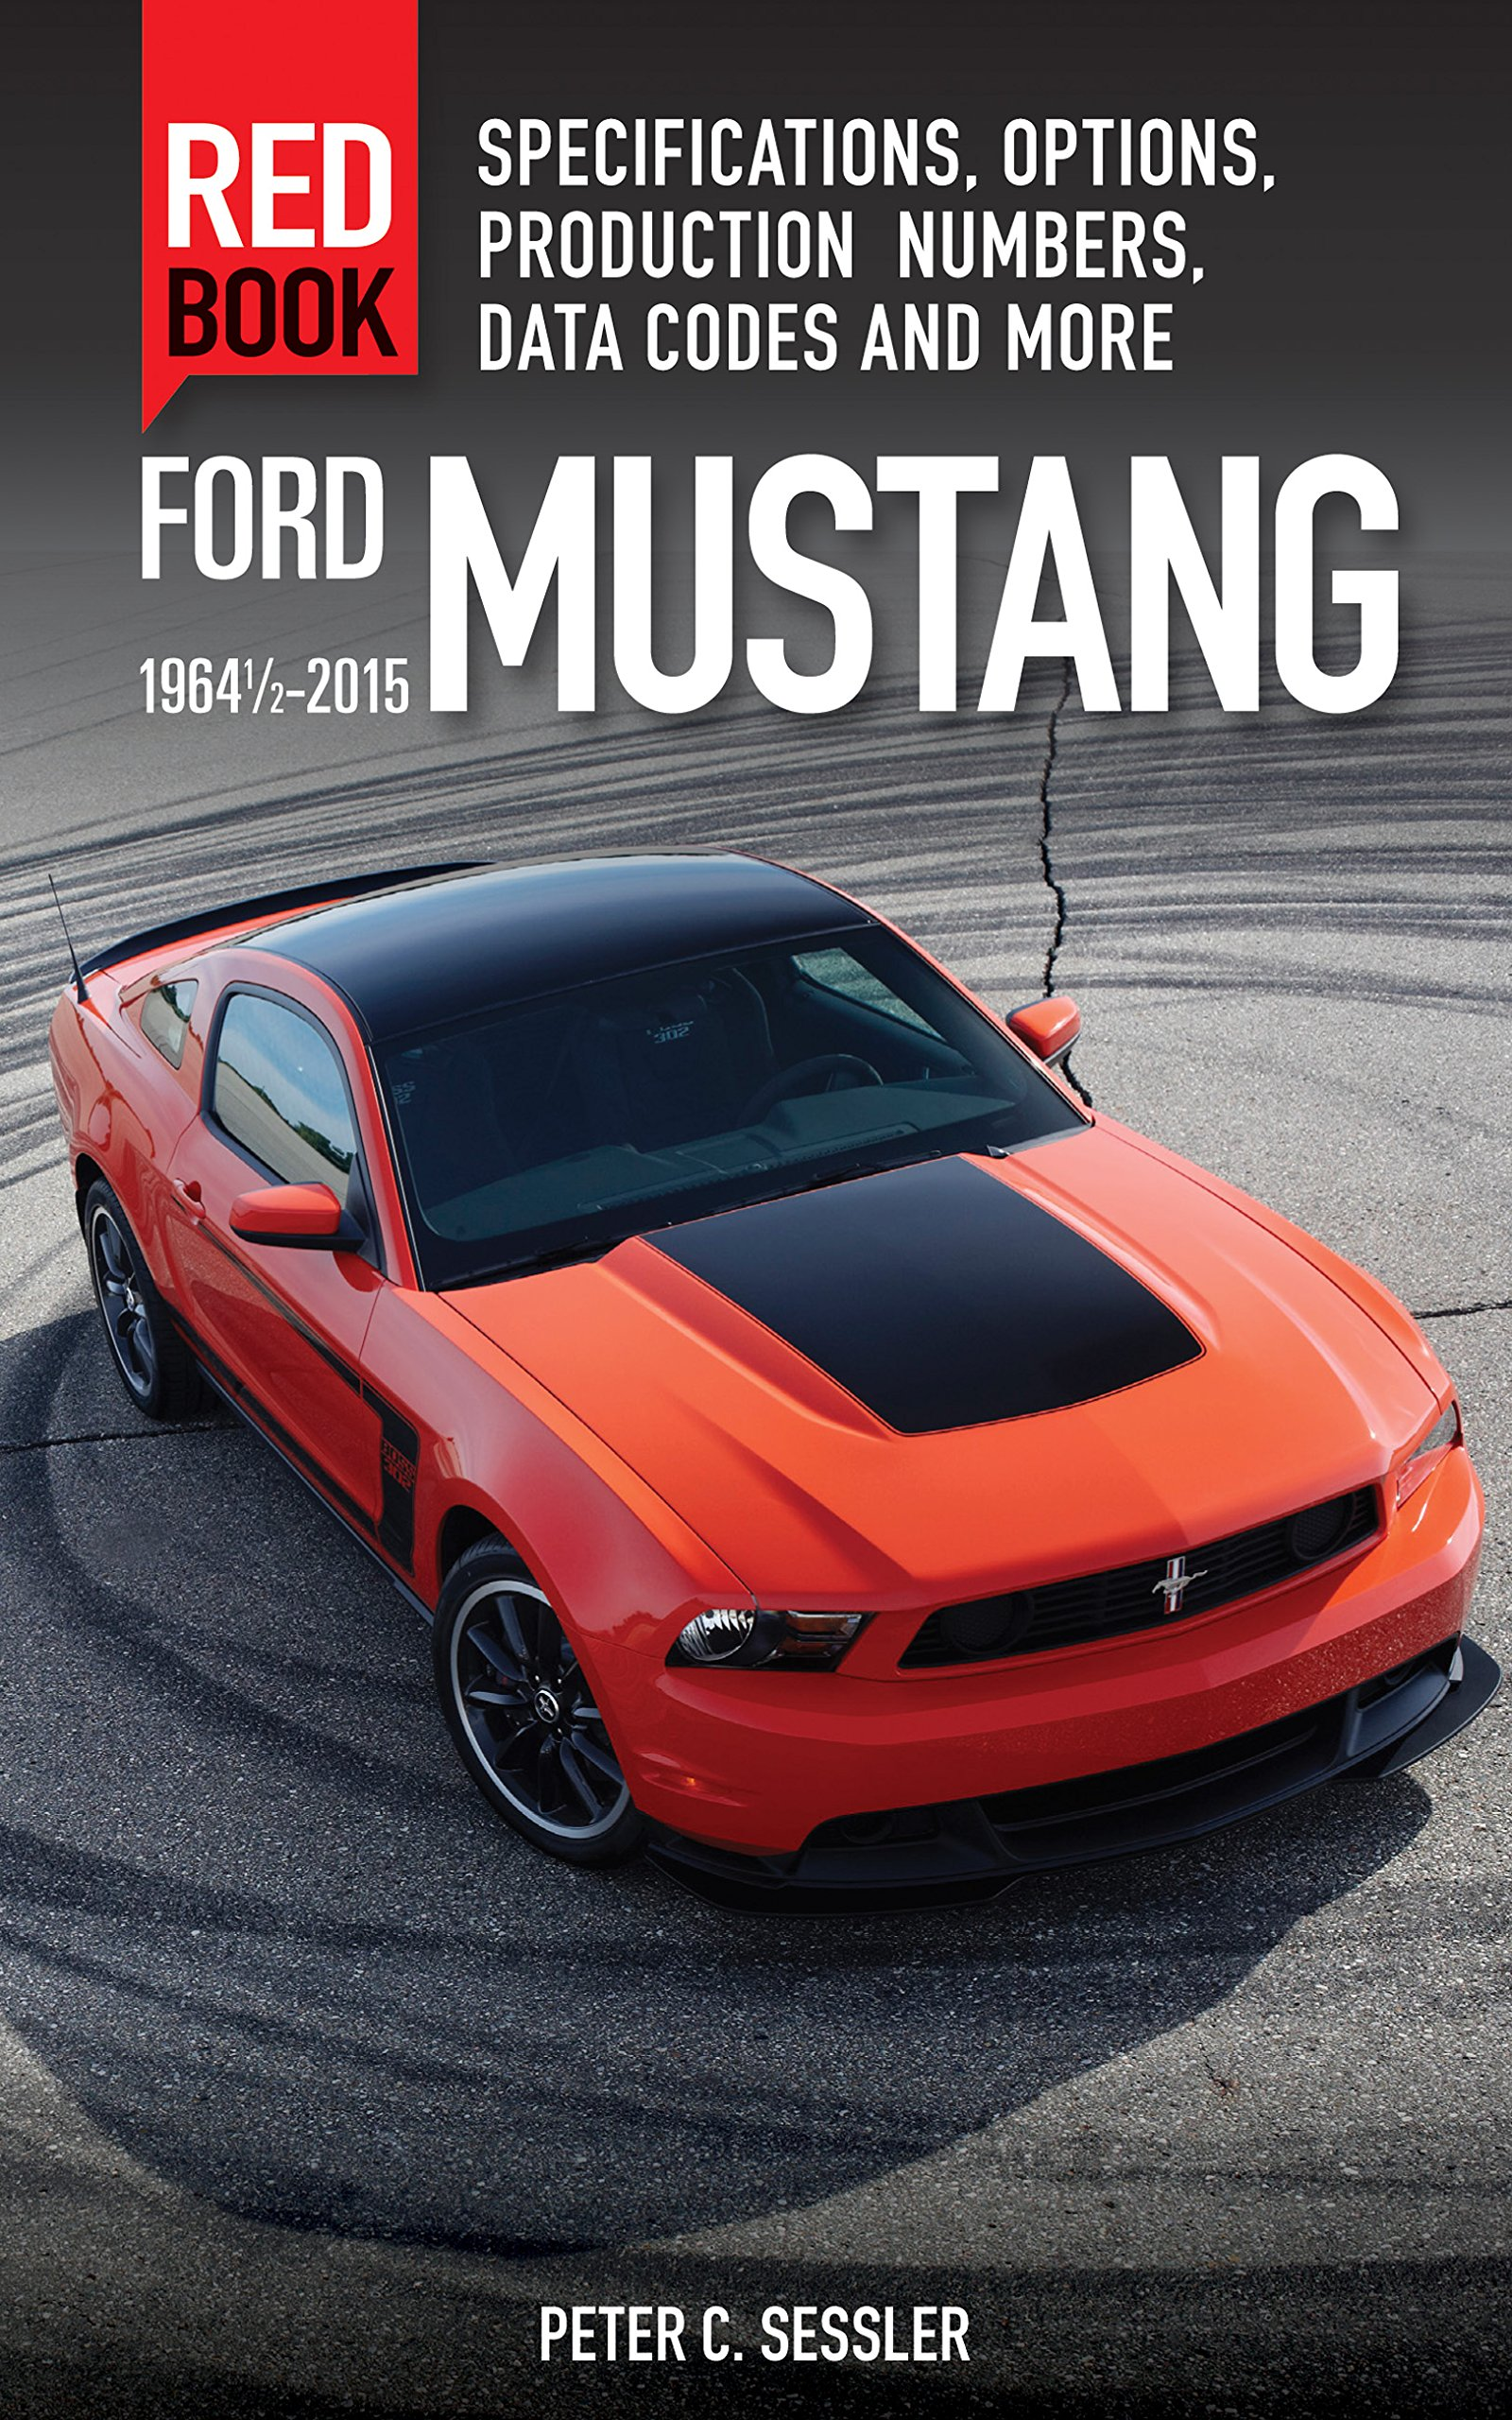 Ford Mustang Red Book 1964 1/2-2015: Specifications, Options, Production  Numbers, Data Codes, and More: Peter Sessler: 9780760347447: Amazon.com:  Books